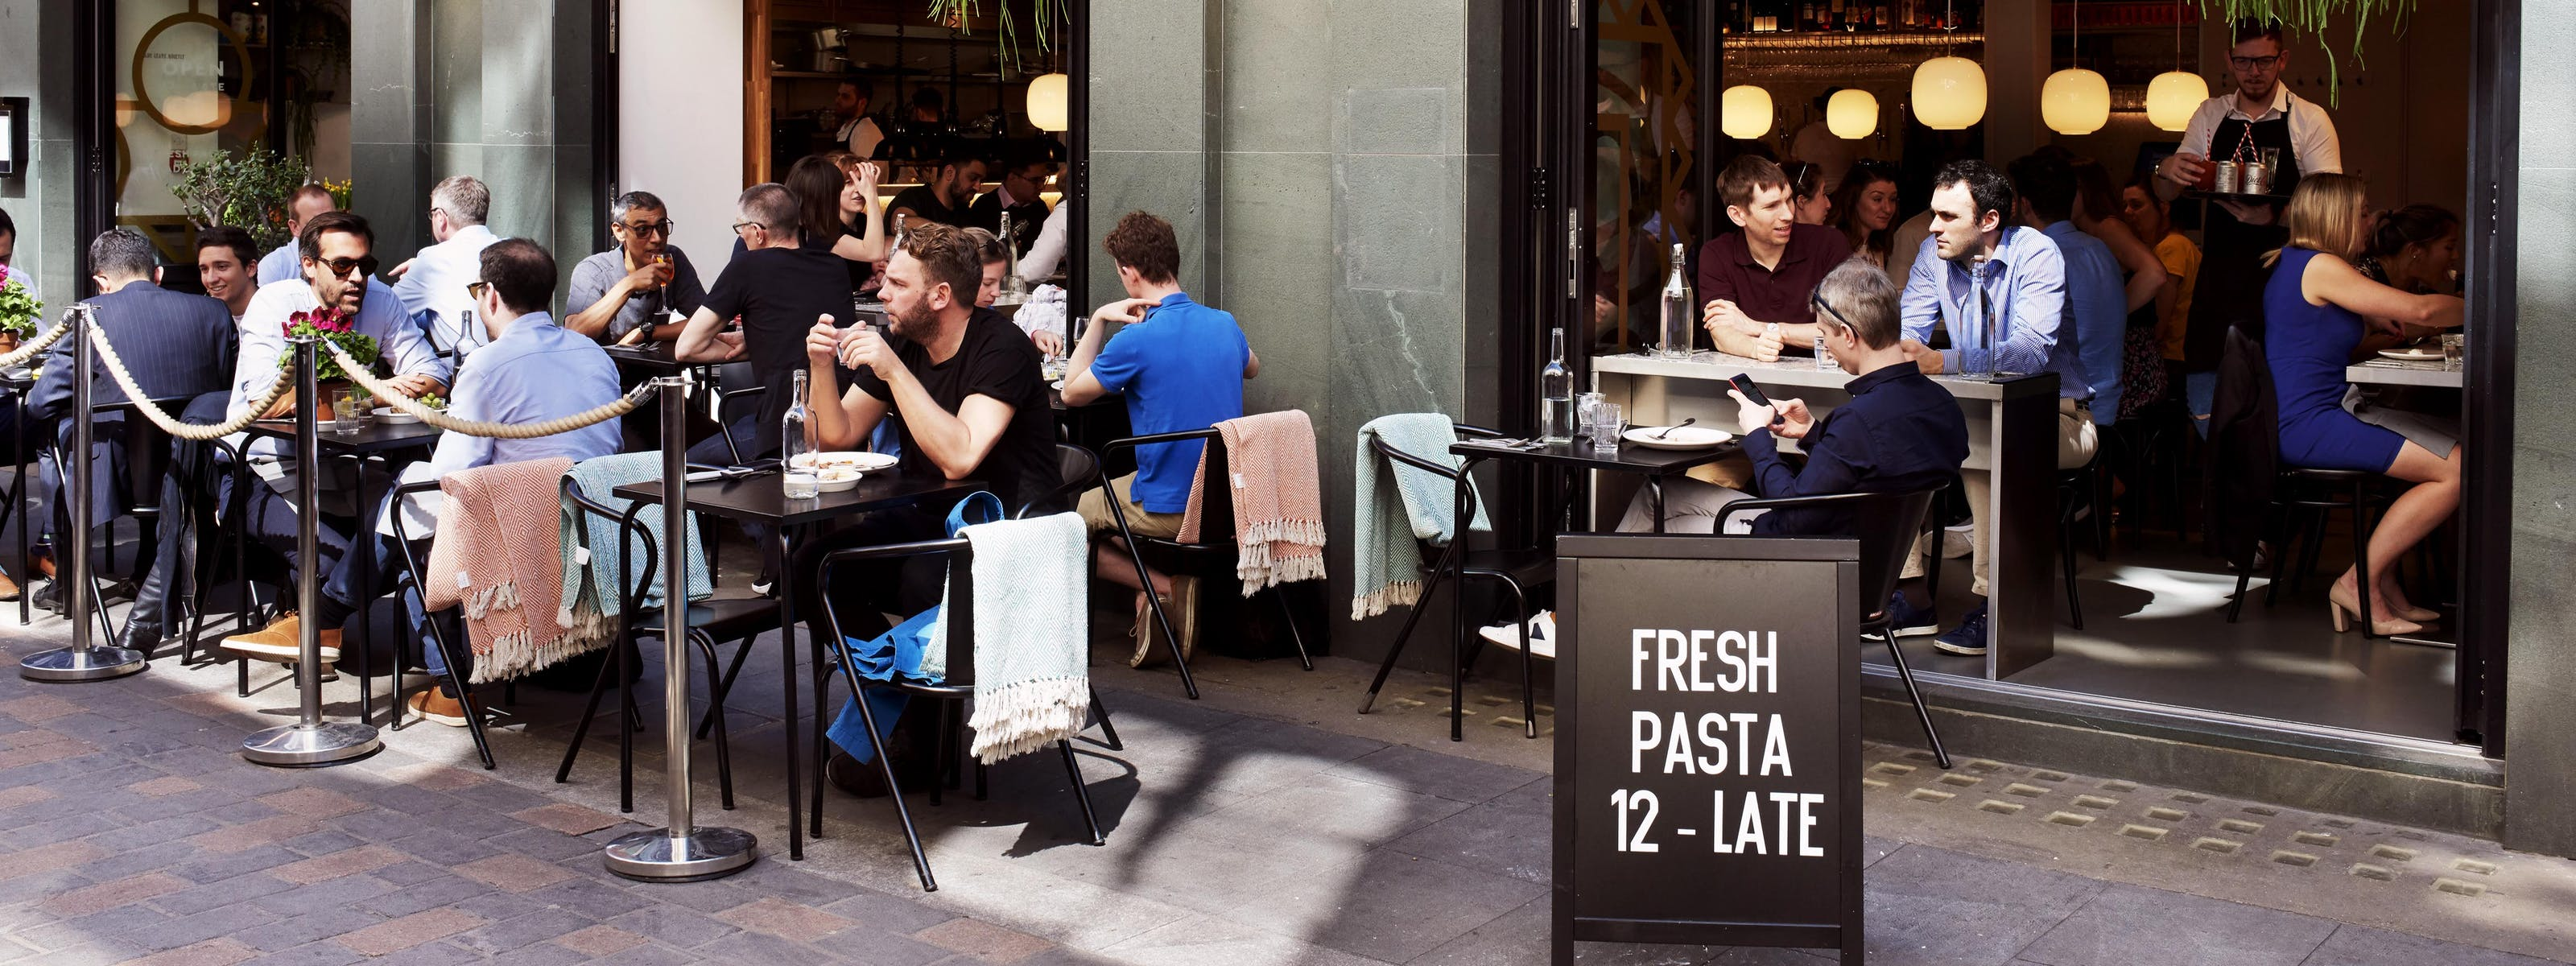 13 Great Restaurants Near Oxford Circus For A Post-Retail-Therapy Meal - London - The Infatuation